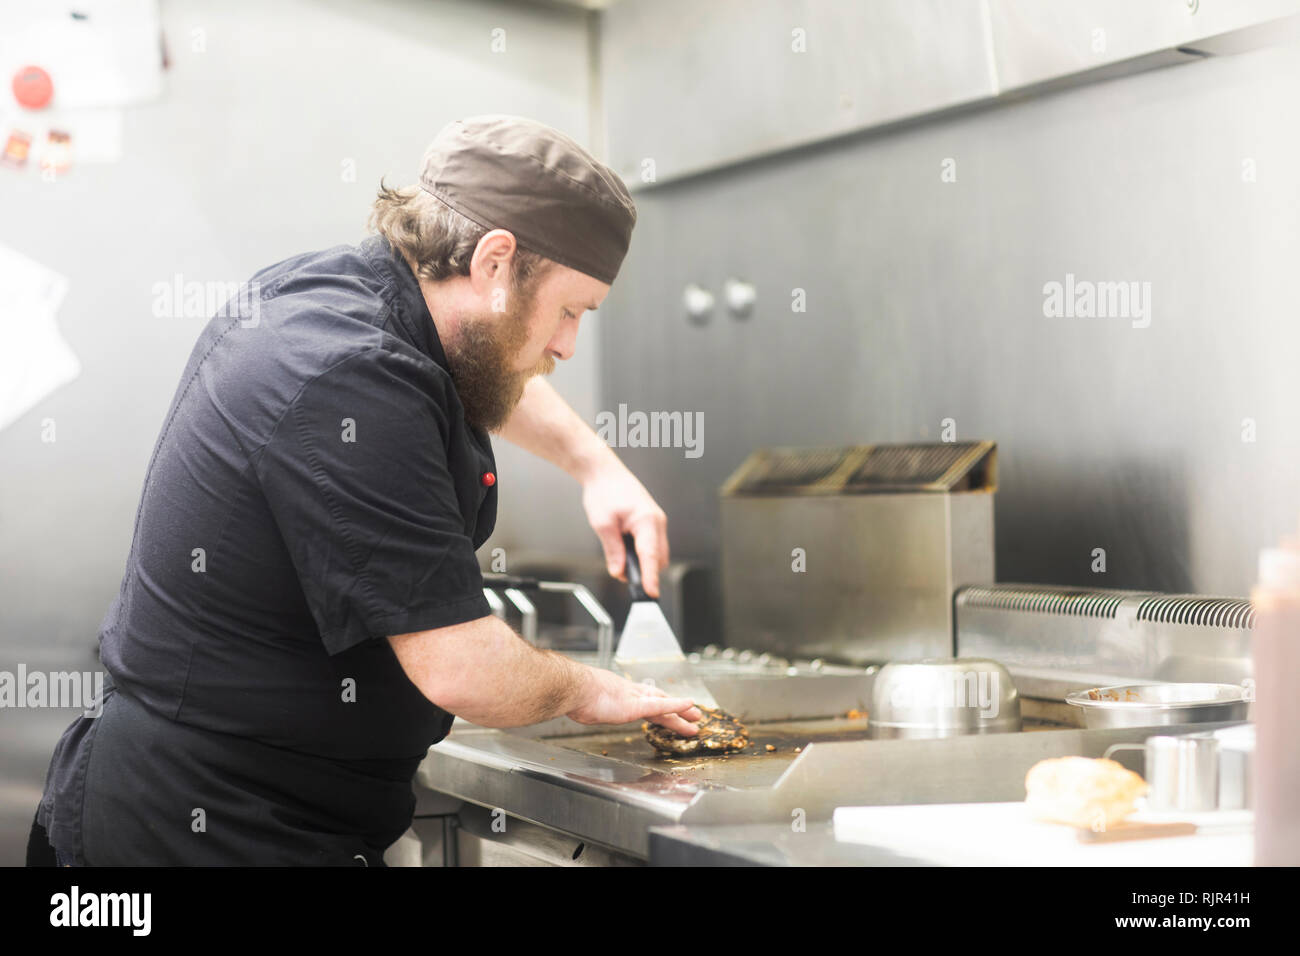 Fast food worker frying burger in commercial kitchen - Stock Image